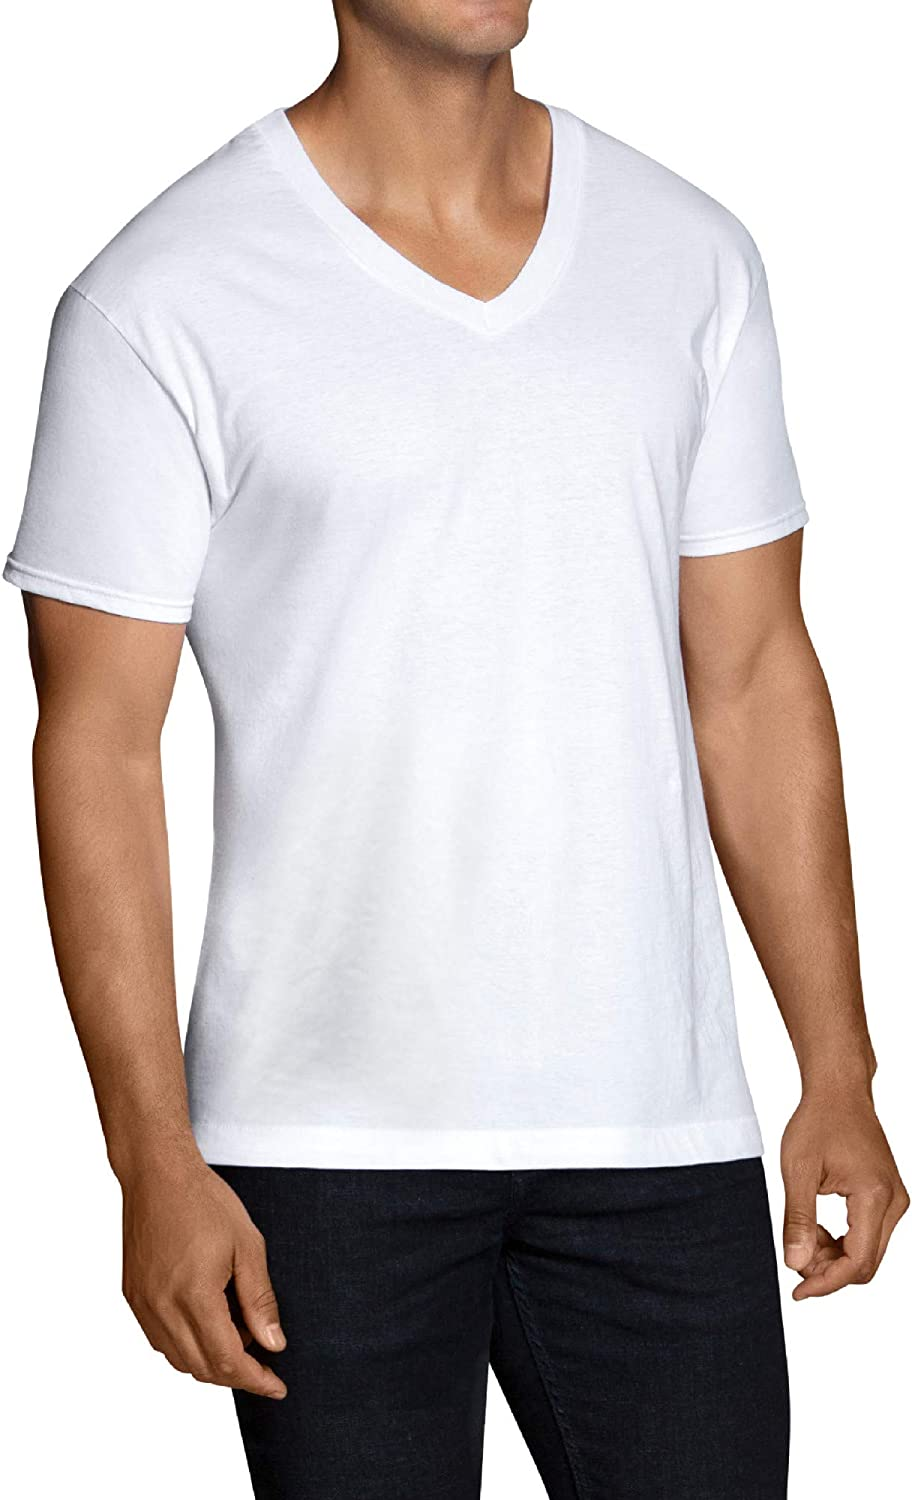 Pack of 10 White Cotton Fruit of the Loom Big Men/'s Crew Neck T-Shirts 2x 3x